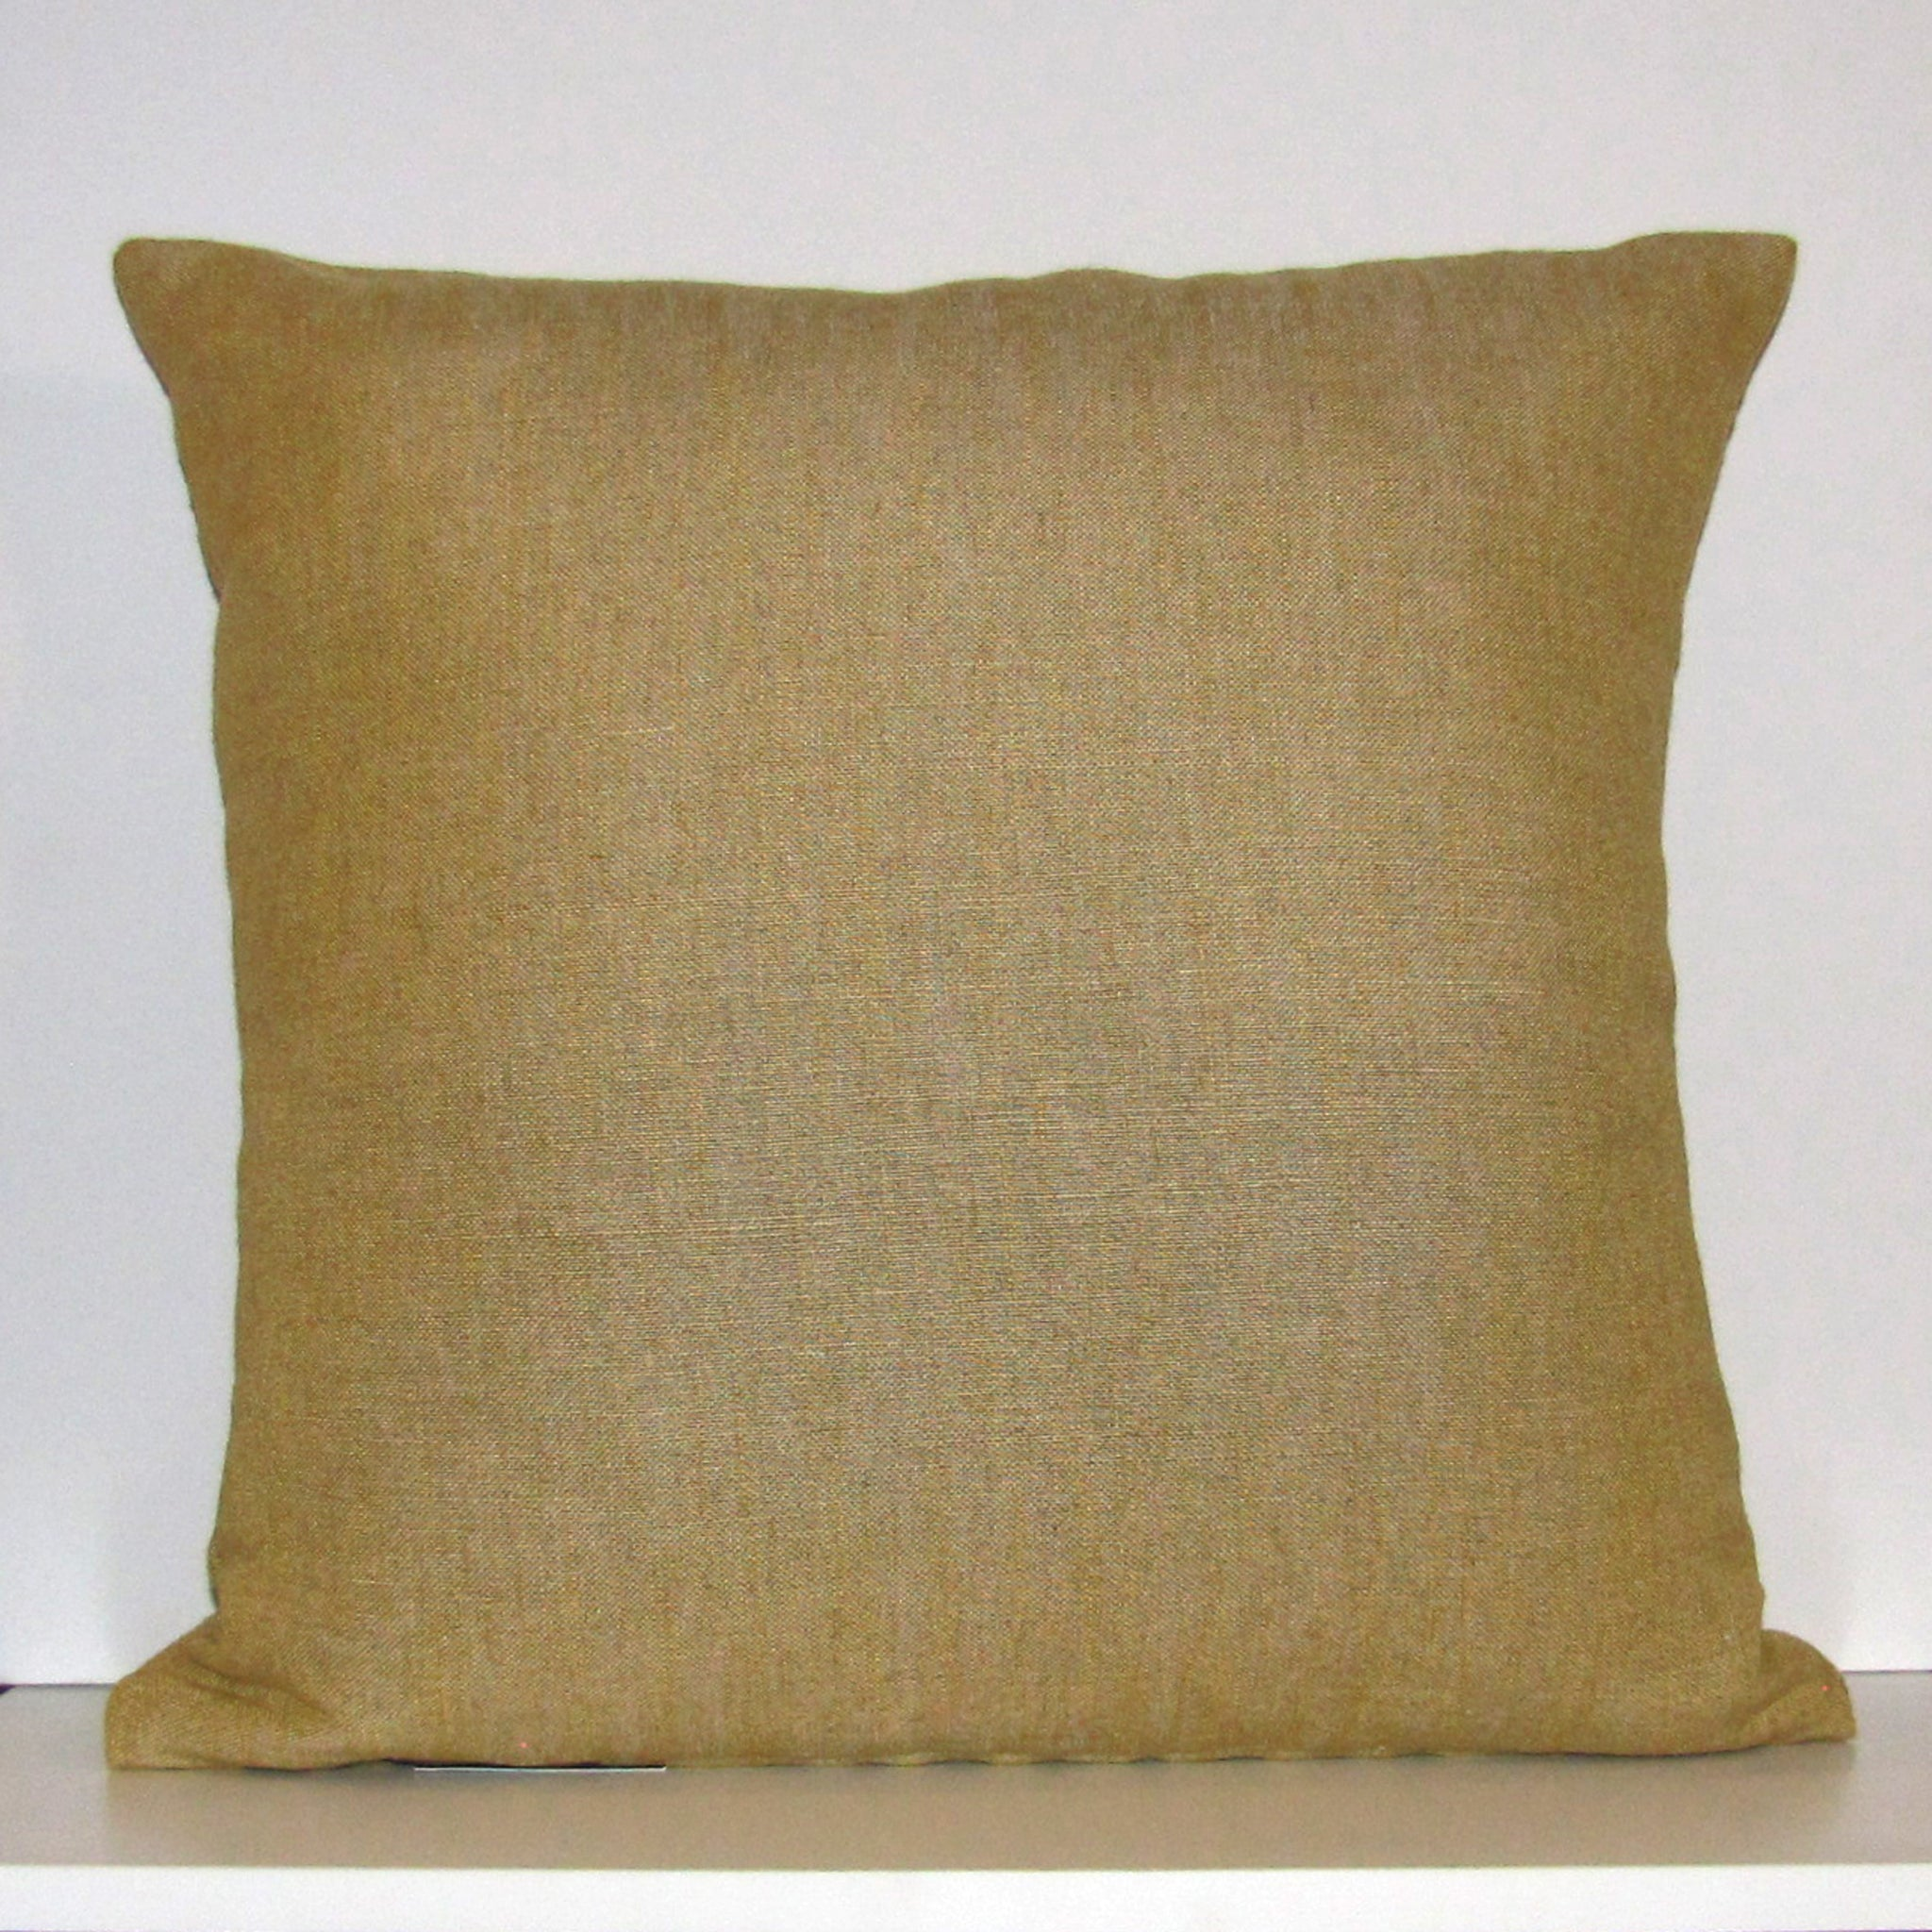 Mimosa linen cushion cover